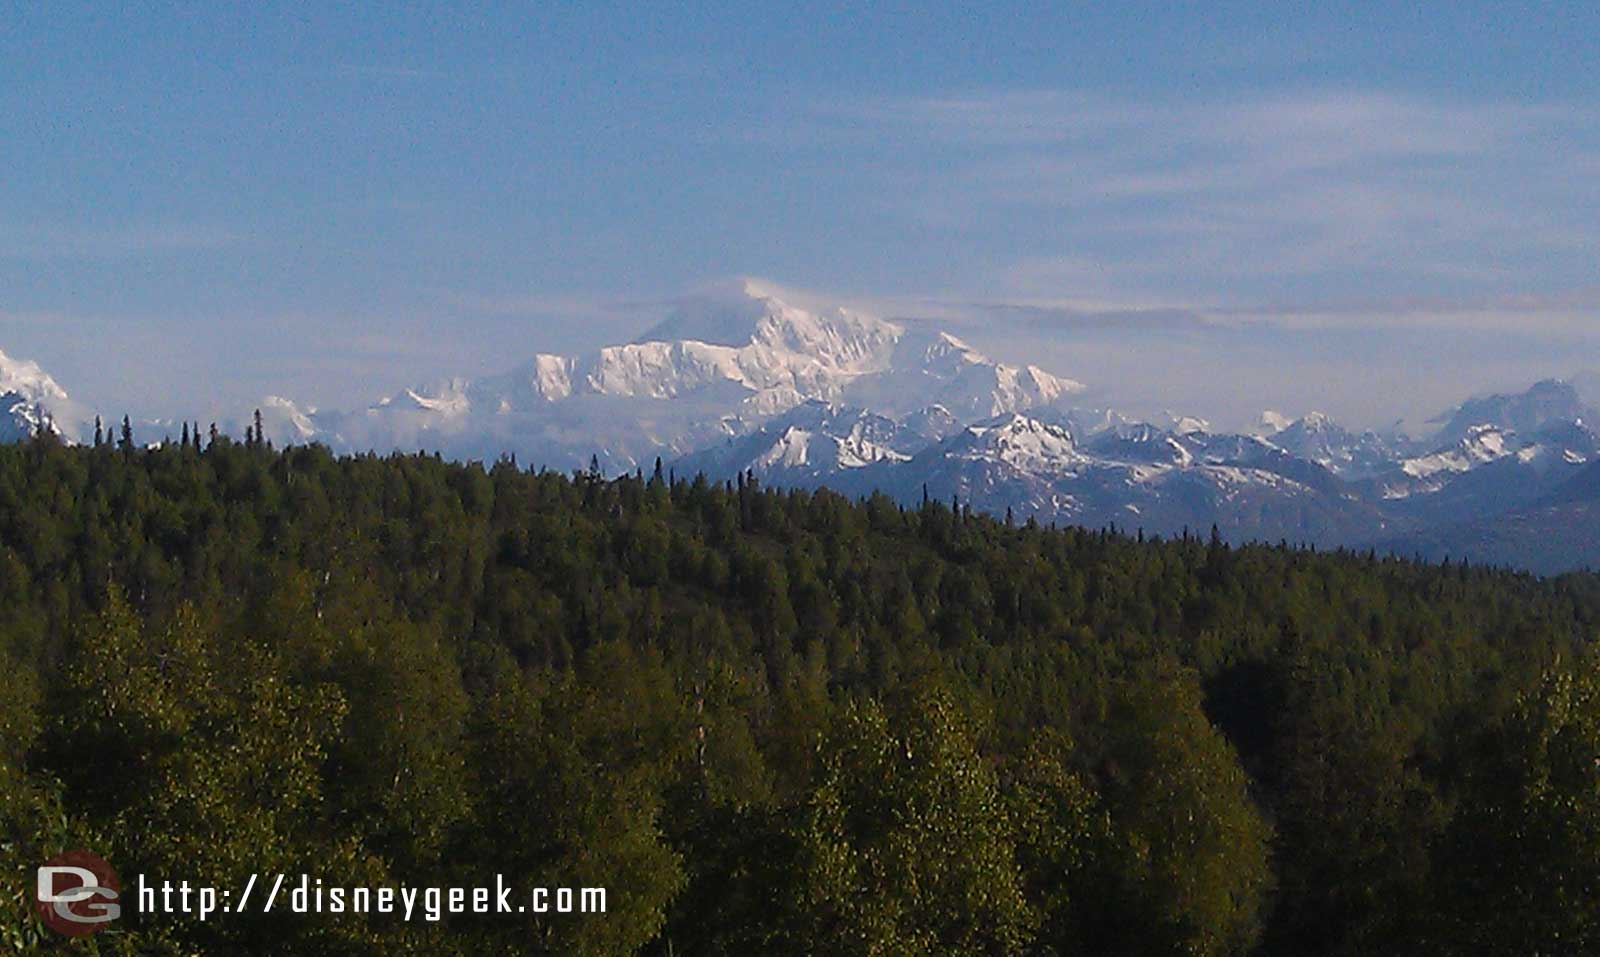 A tighter shot of Mt McKinley #Alaska